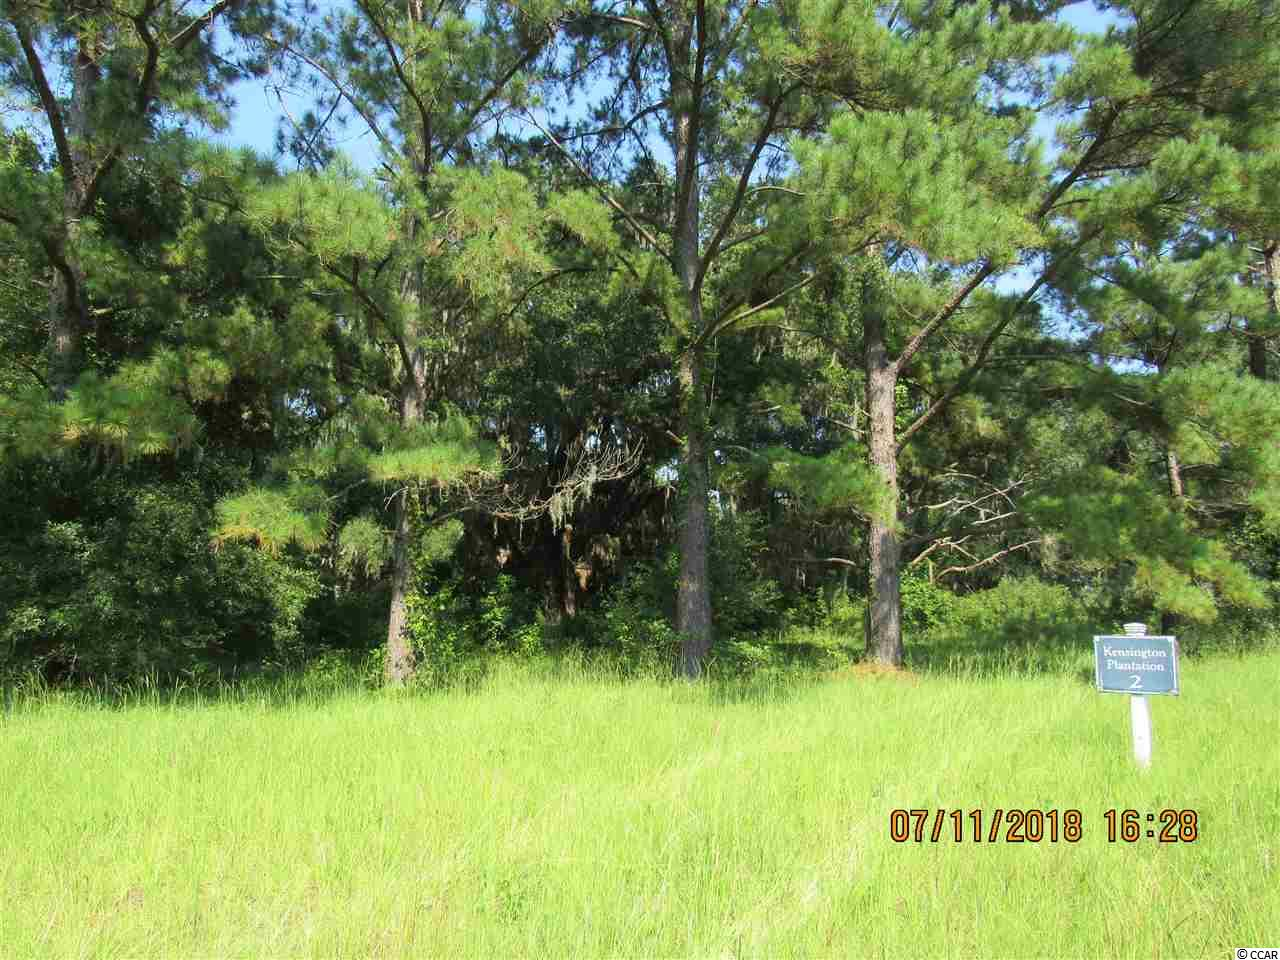 Just over 3 acres, this Large marsh front lot located in private community of Kensington Plantation...just minutes from front street in Georgetown.  This lot features large live oak trees and a perfect location for a grand low country style home.  Property owners enjoy private secure neighborhood just minutes to shops and dining as well as recreational activities. Community dock and community boat landing are also available for property owners. Located at the end of the road with direct views of the Black River and rice fields make this lot the perfect spot to build the home of your dreams.  Community consists of 386 secluded acres with 14 homesites and dyked rice fields for water fowl.